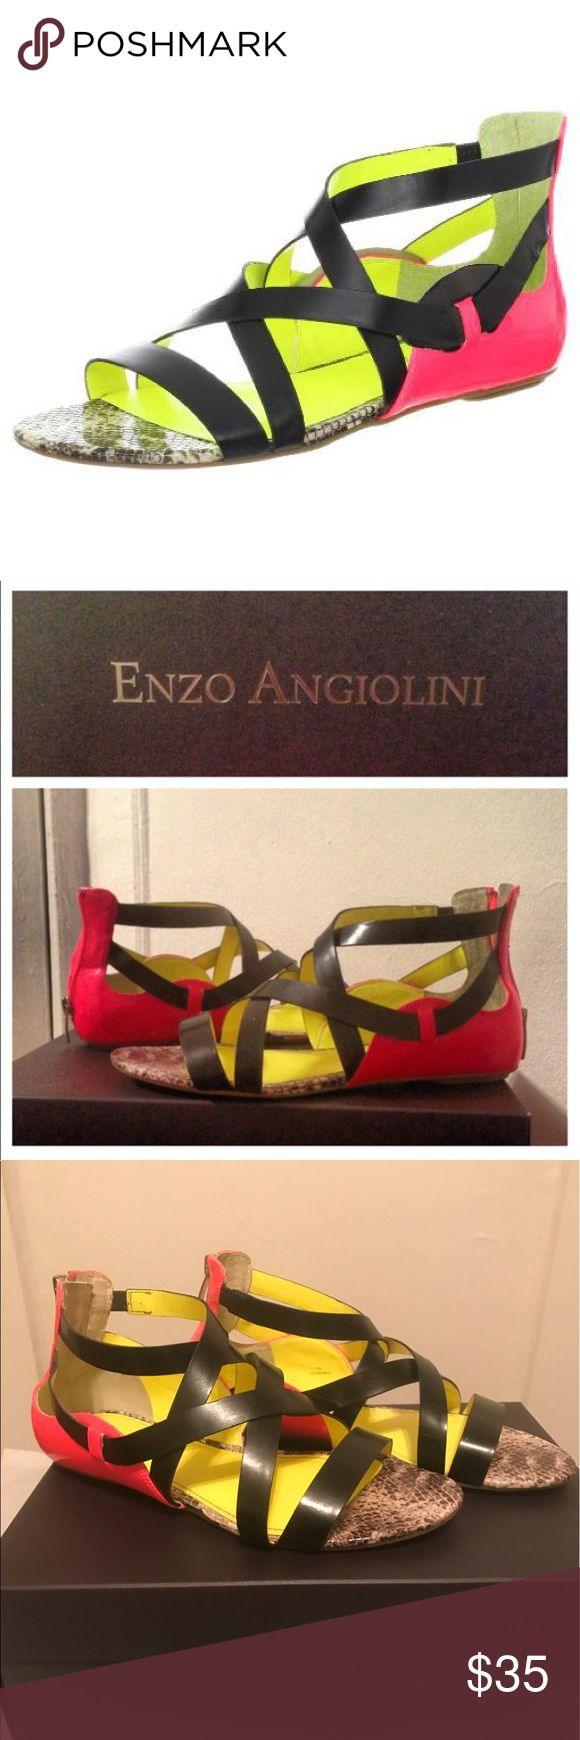 Enzo Angiolini Karnak Sandals Like new, worn 2 times but they just aren't for me! Comes with box!   📦I ONLY SHIP MONDAY-THURSDAY📫 Enzo Angiolini Shoes Sandals